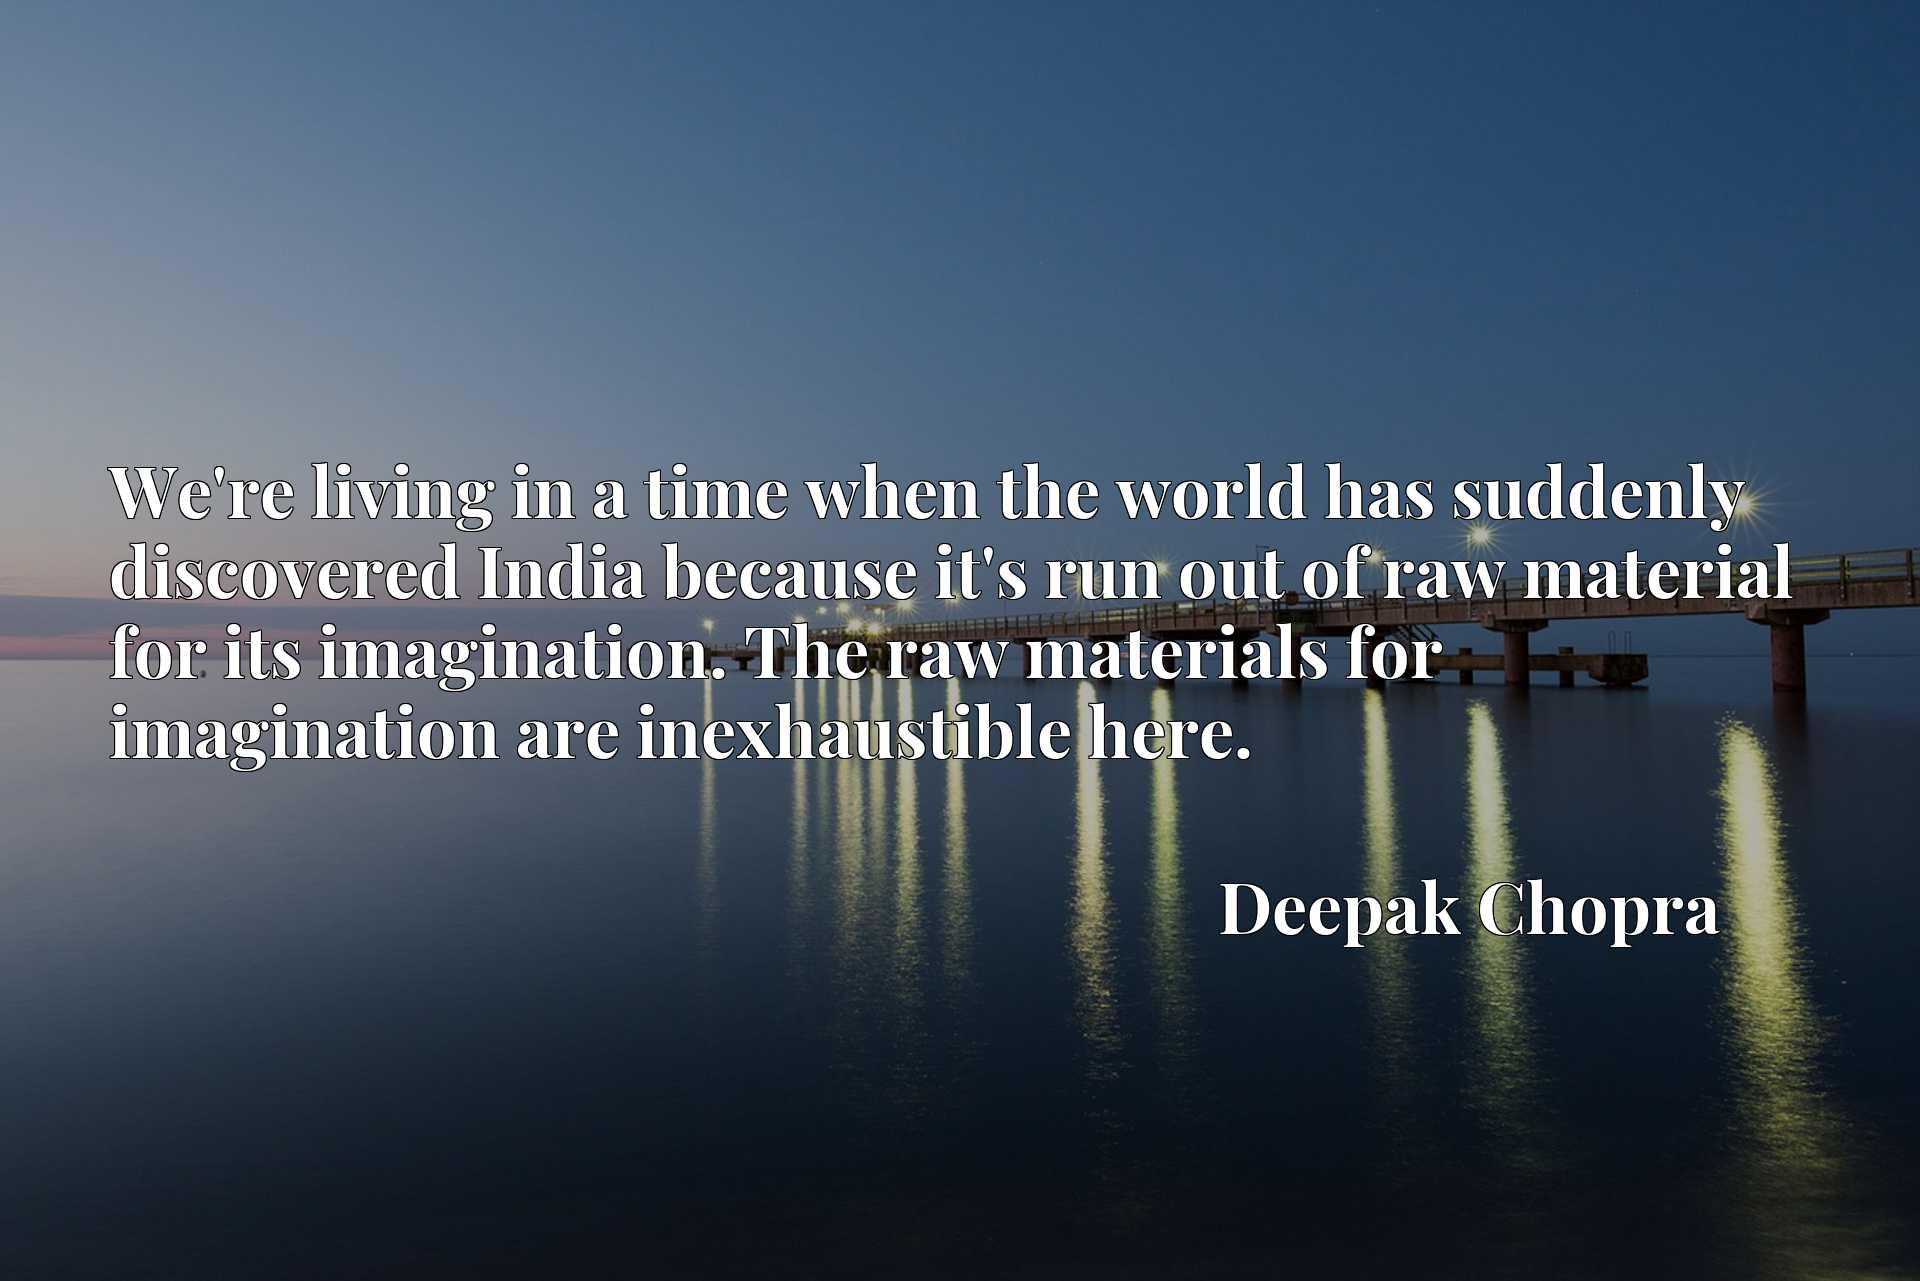 Quote Picture :We're living in a time when the world has suddenly discovered India because it's run out of raw material for its imagination. The raw materials for imagination are inexhaustible here.